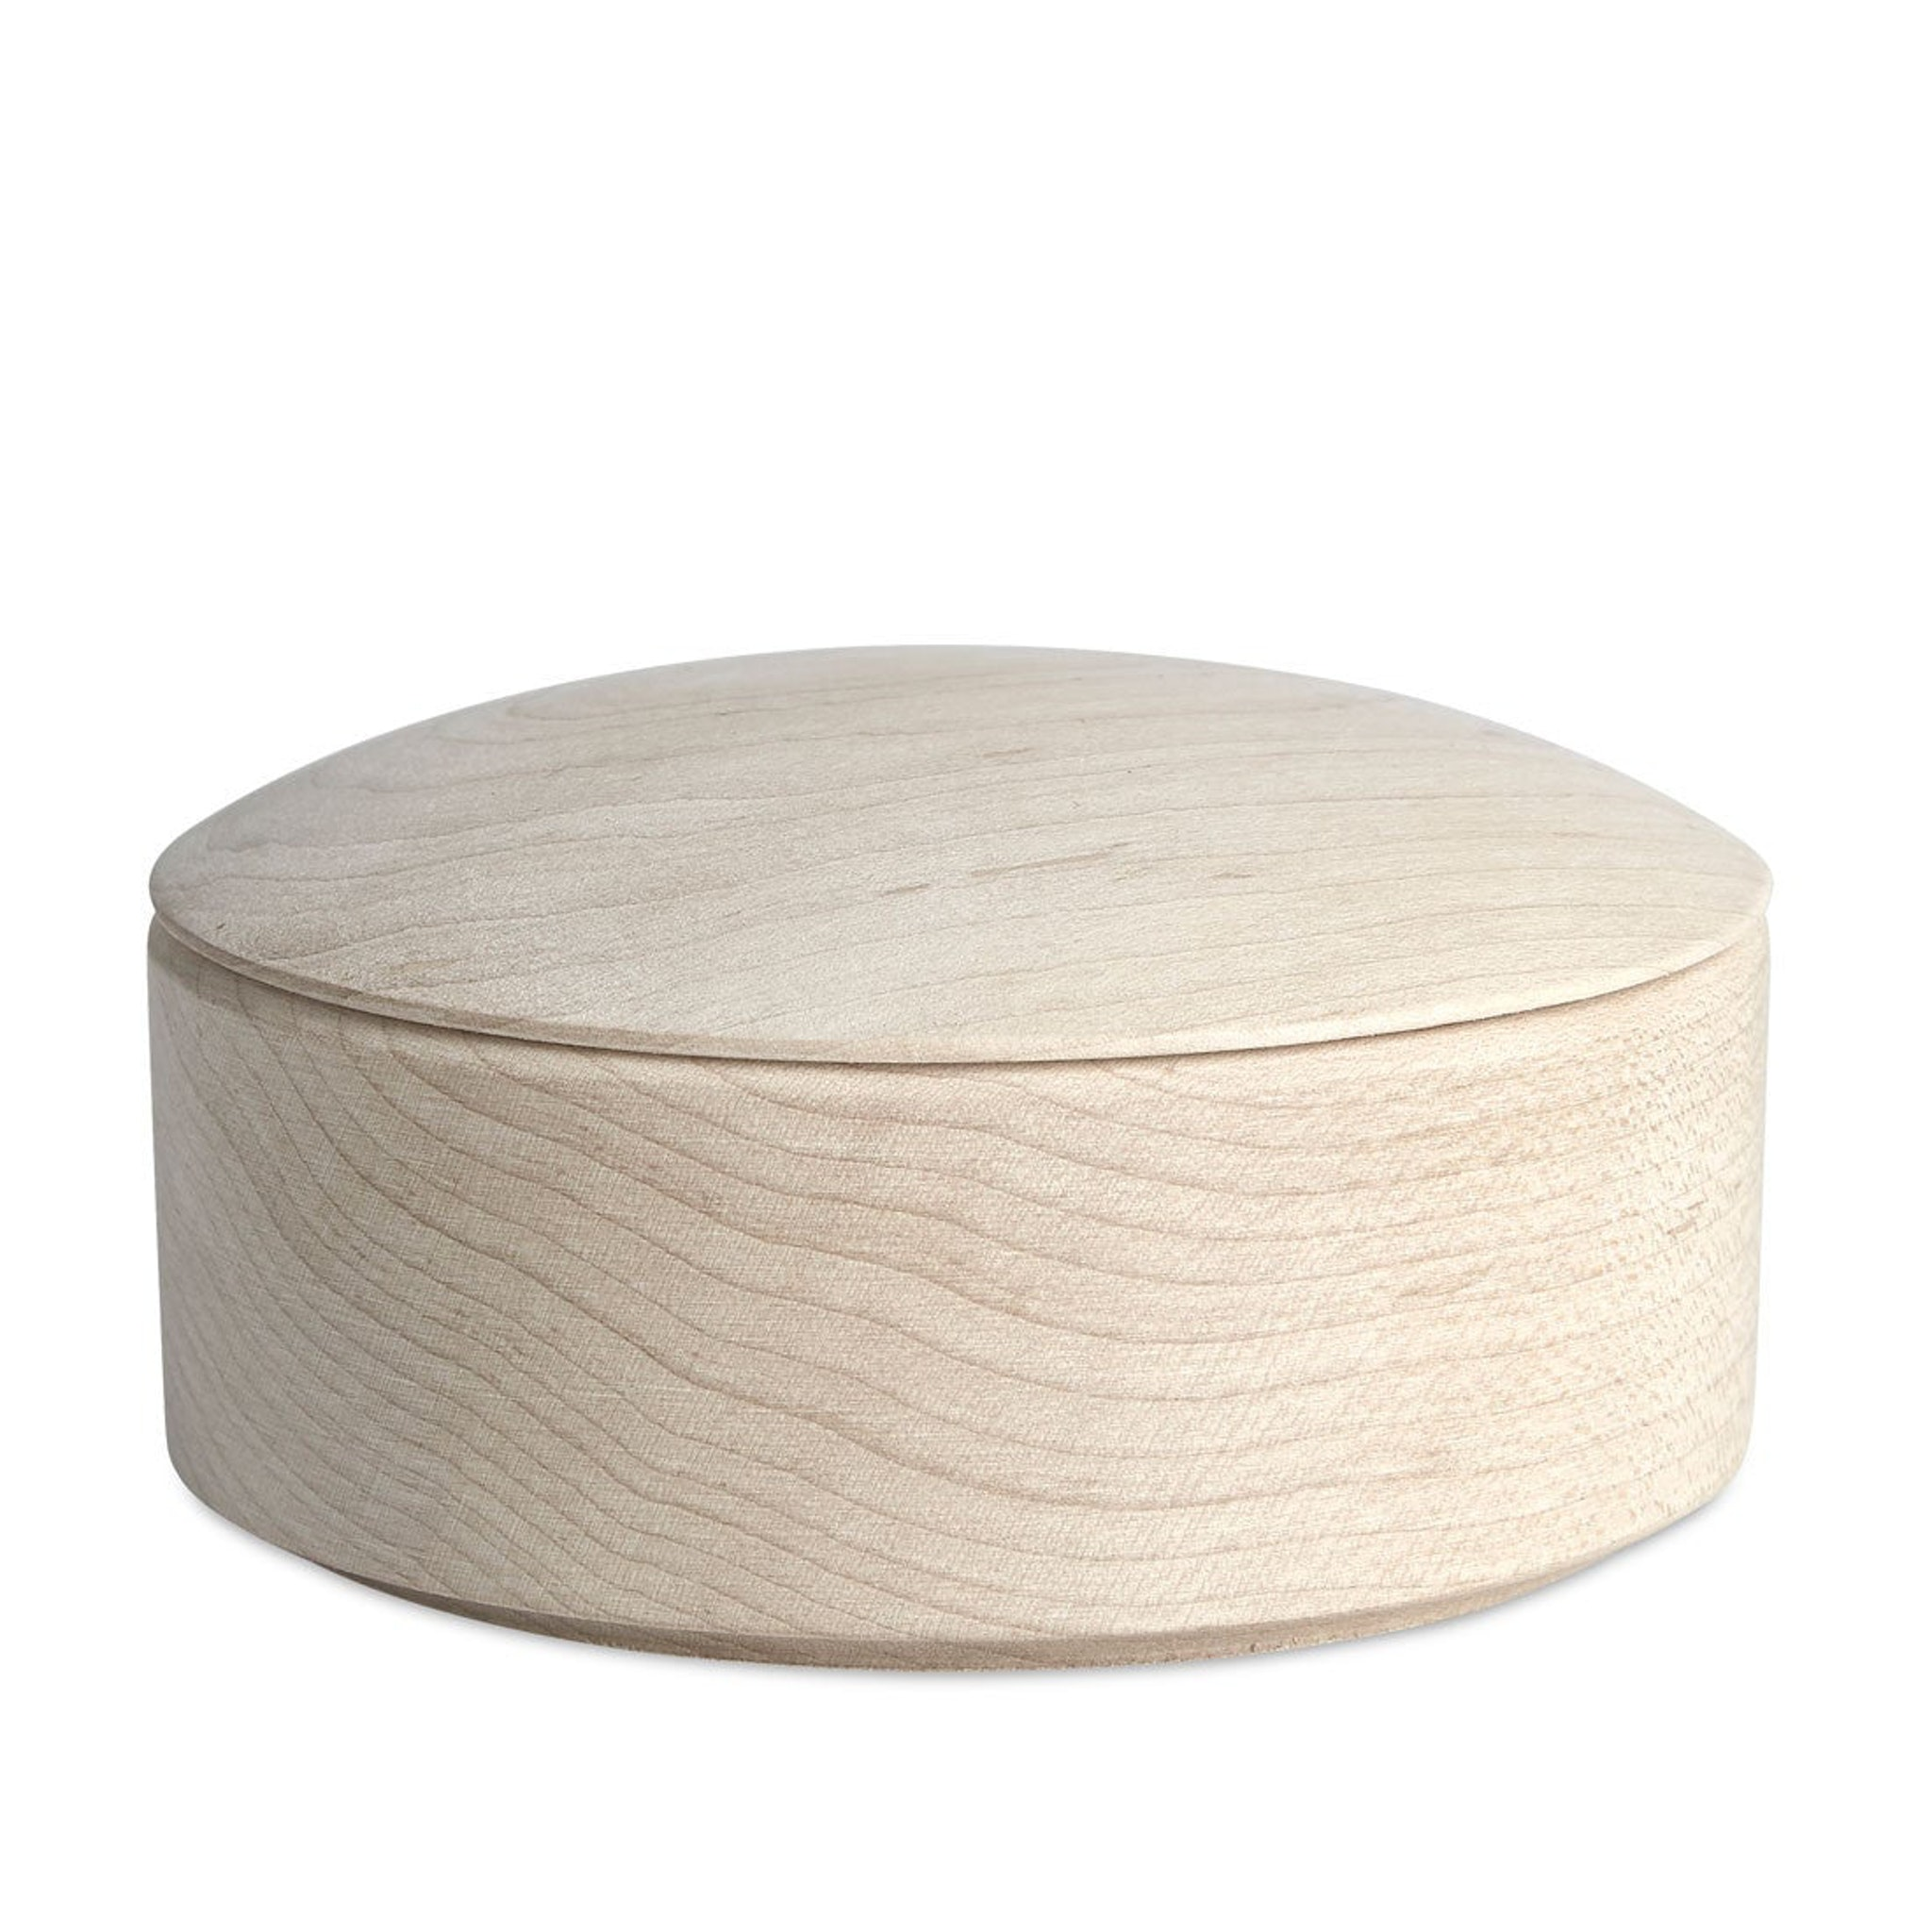 Lens Box Stackable Maple by Thomas Jenkins